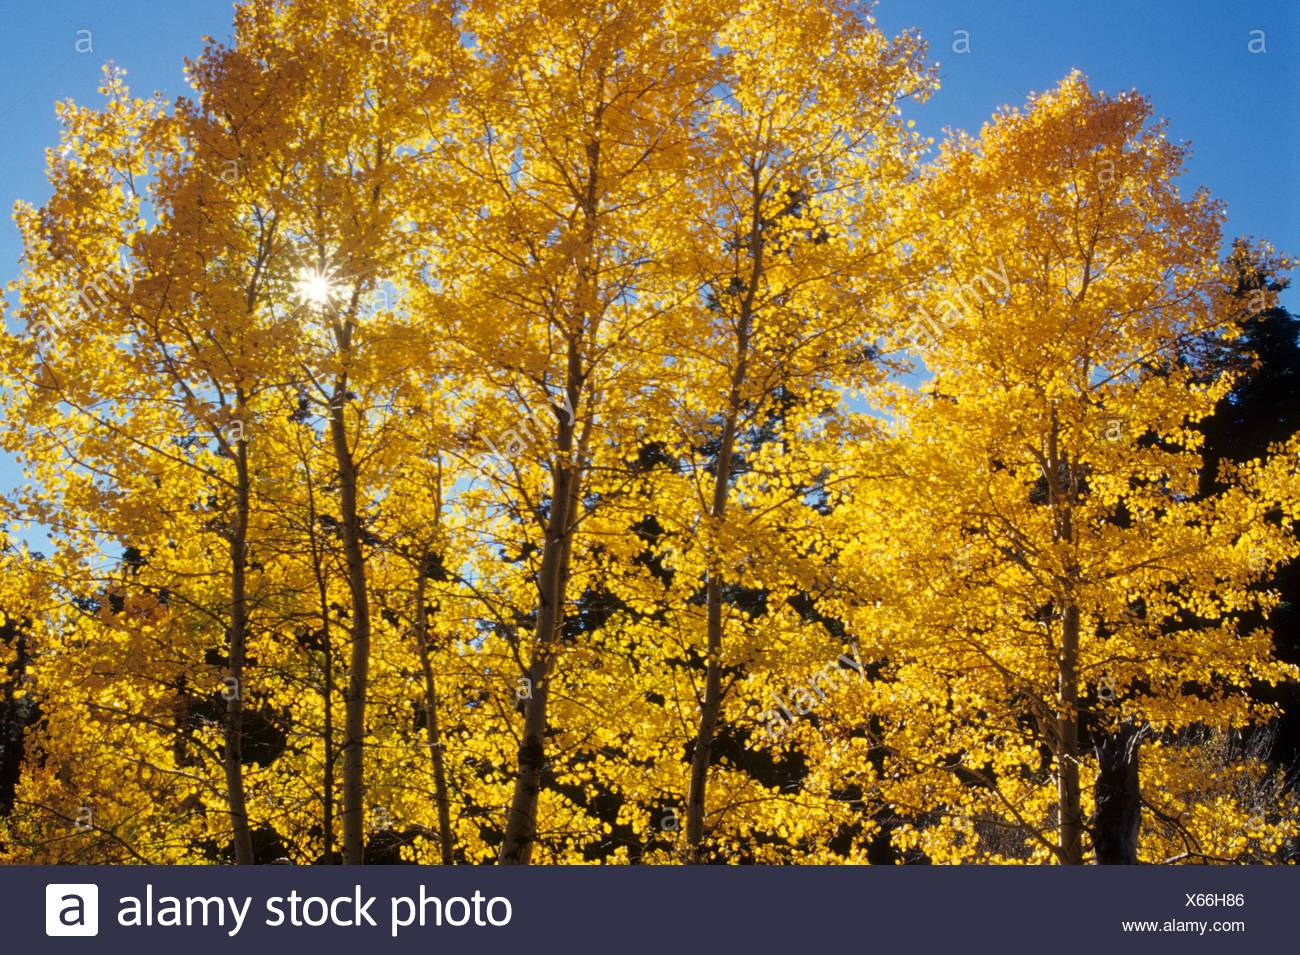 Autumn aspen with sunburst at Stairstep Spring, Fremont National Forest, Oregon. - Stock Image